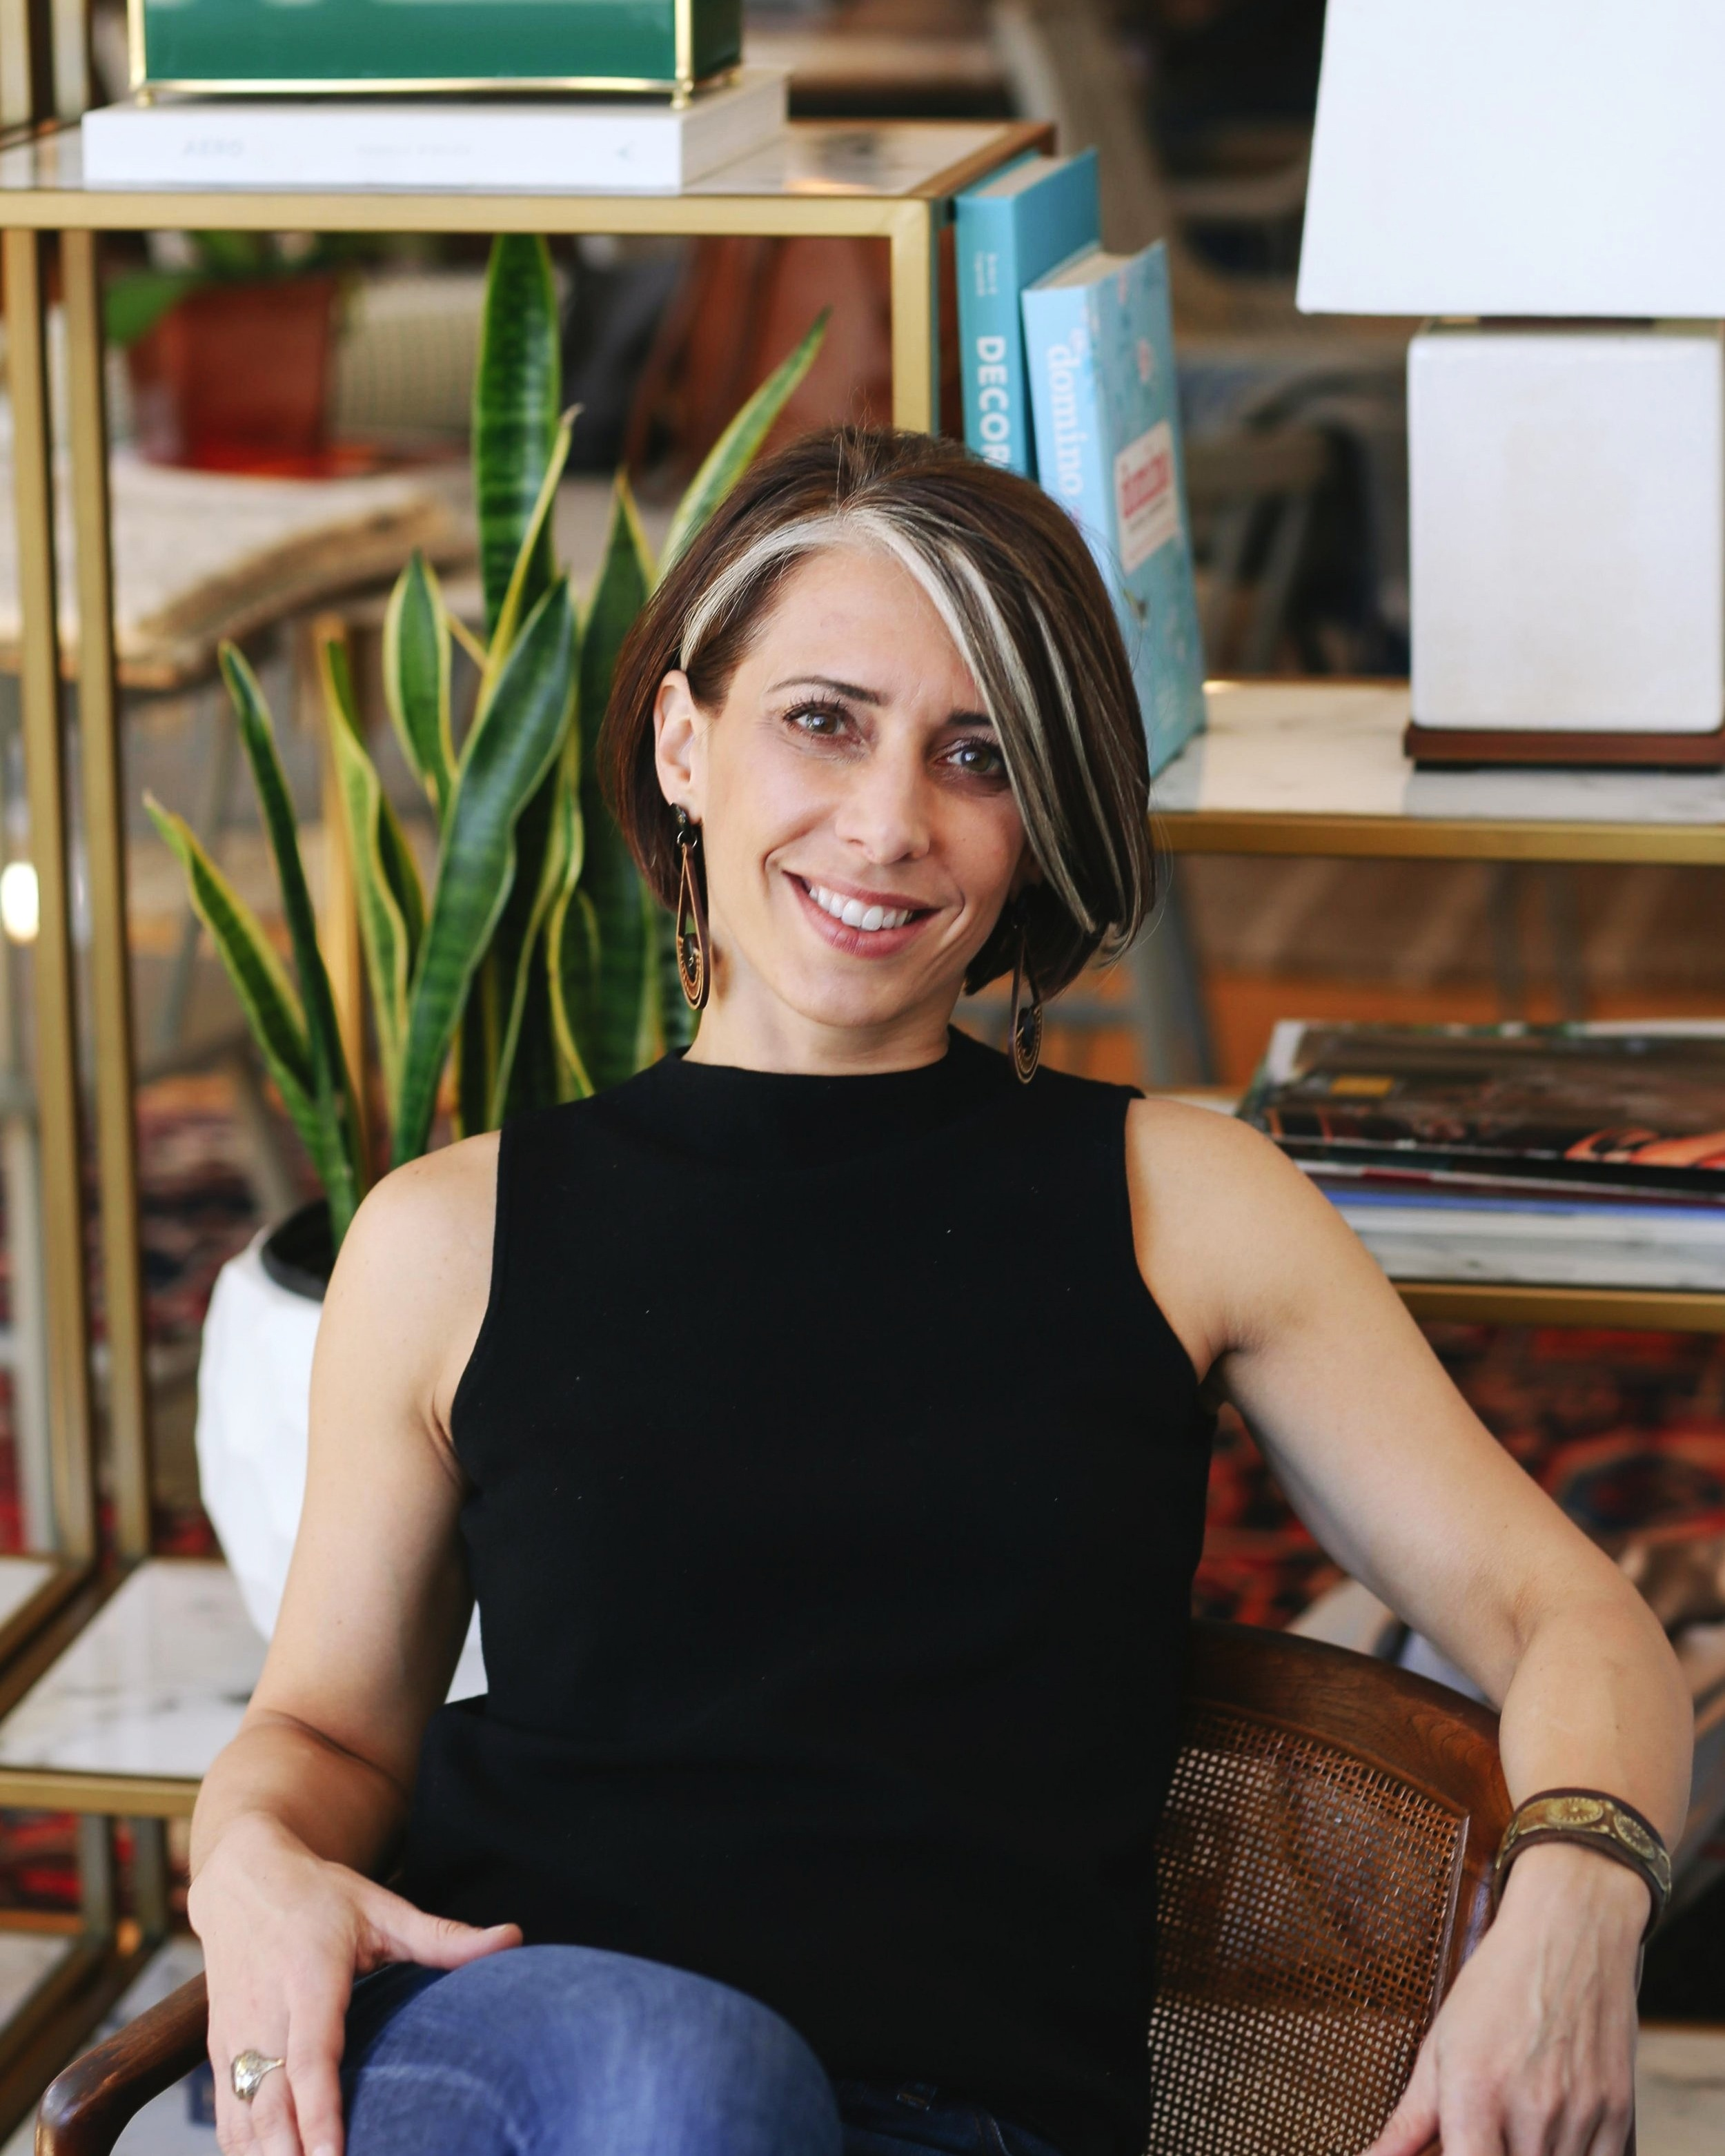 Stevie McFadden - Stevie has spent most of her career crusading for better workplaces. After completing her graduate studies in Organizational Development, she held various HR, Leadership and Consulting roles, all focused on helping organizations optimize their talent and culture. Her love of design fueled the launch of a small business focused on residential interiors, initially as a side-hustle in 2014. Stevie passionately believes that the physical environment and cultural environment are deeply connected and recognized an opportunity to marry her love of great design and her organizational behavior expertise to create transformative workplaces with the launch of Flourish.